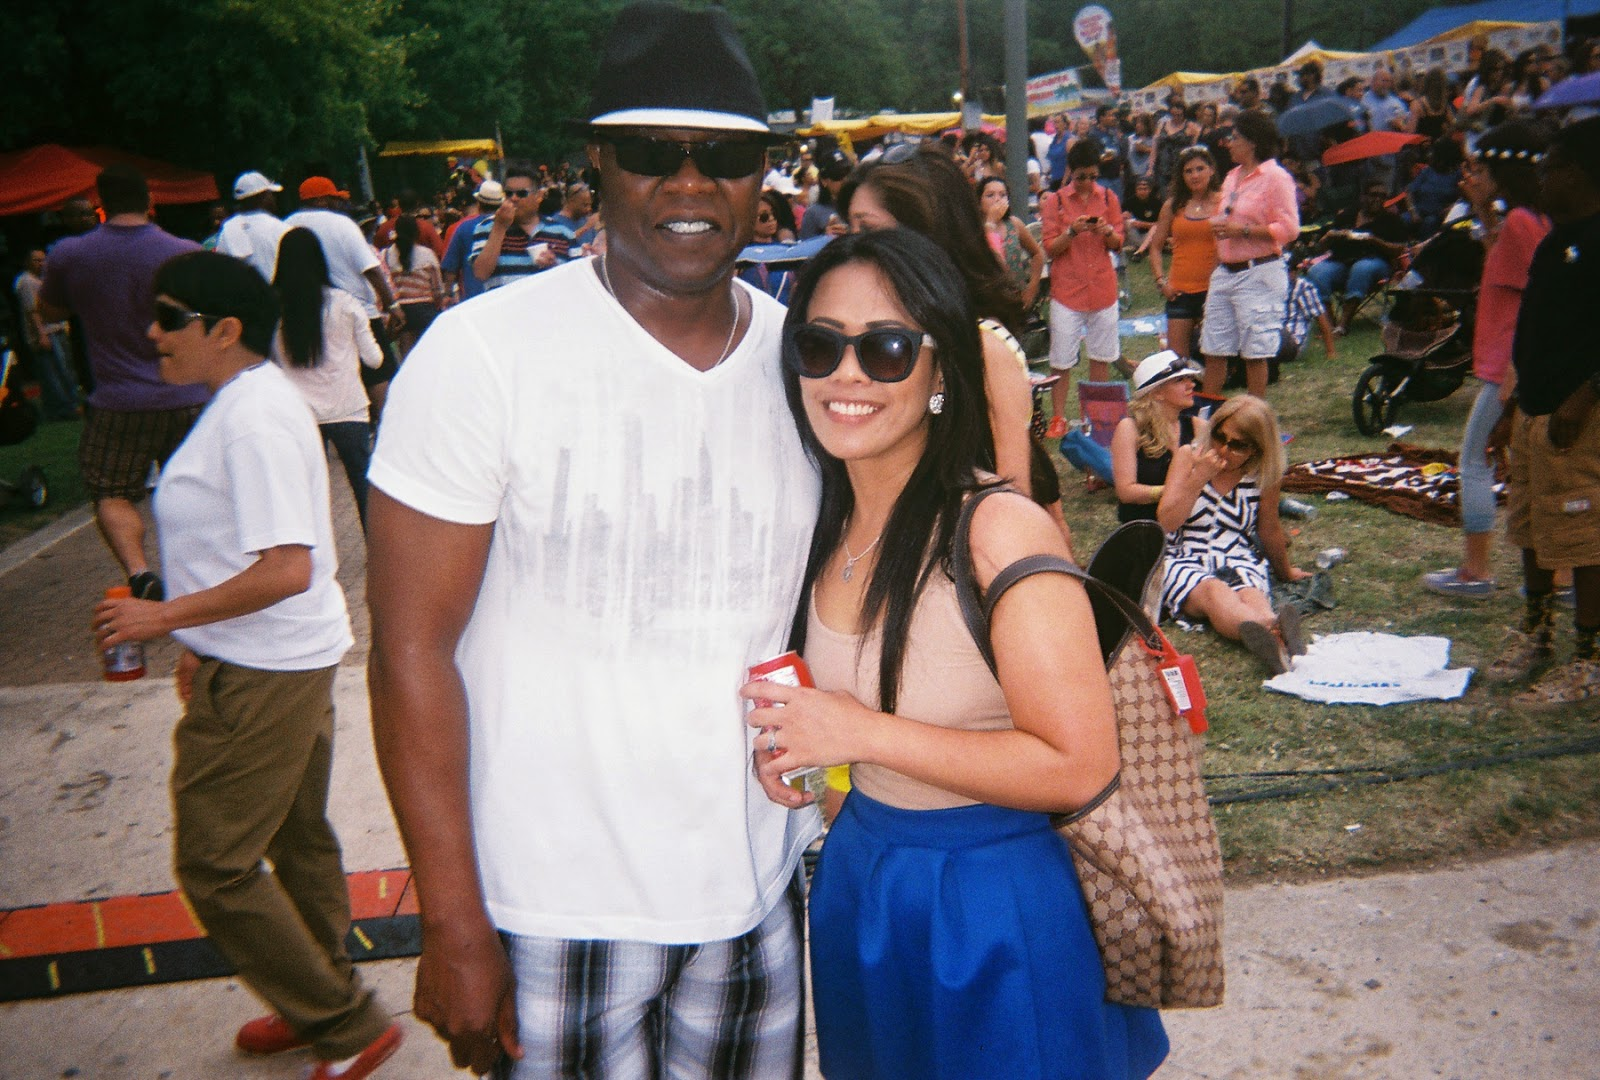 Interracial dating new orleans